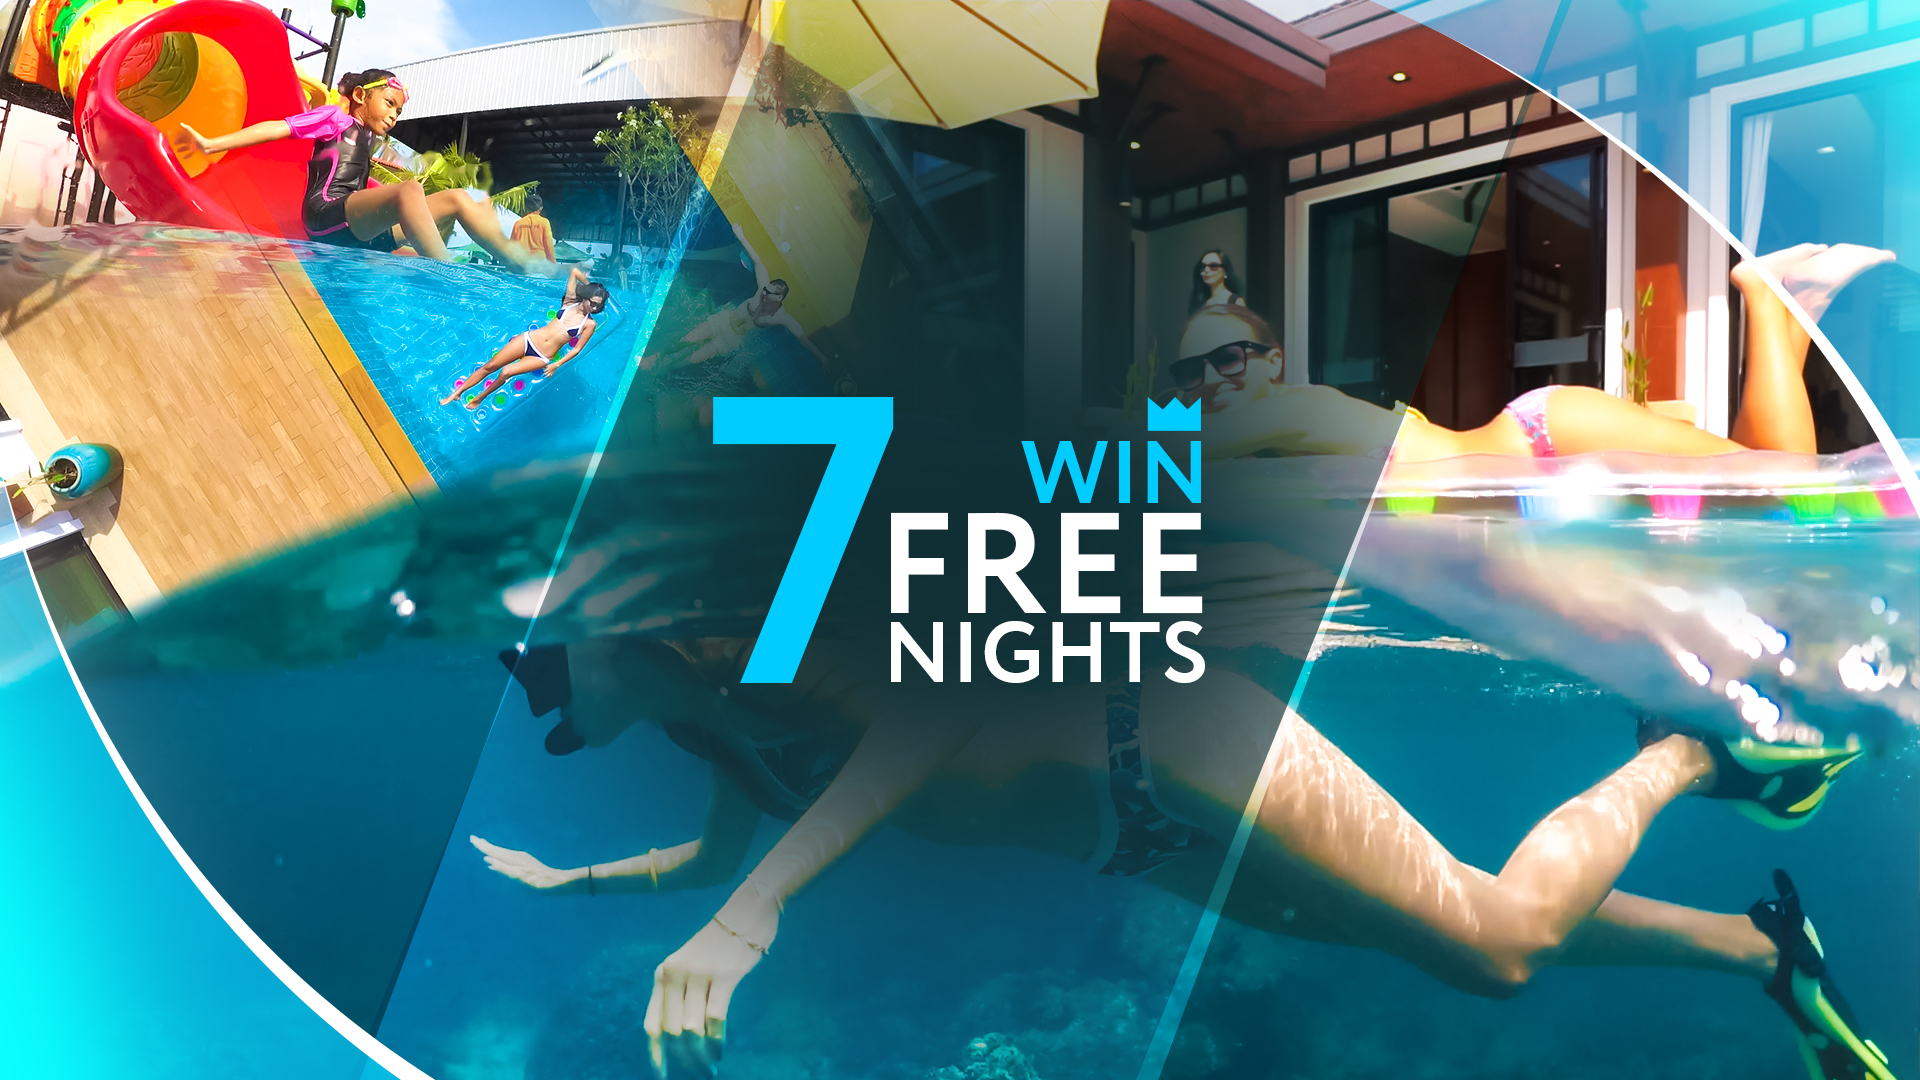 win 7 nights at Rawai VIP Villas, Phuket